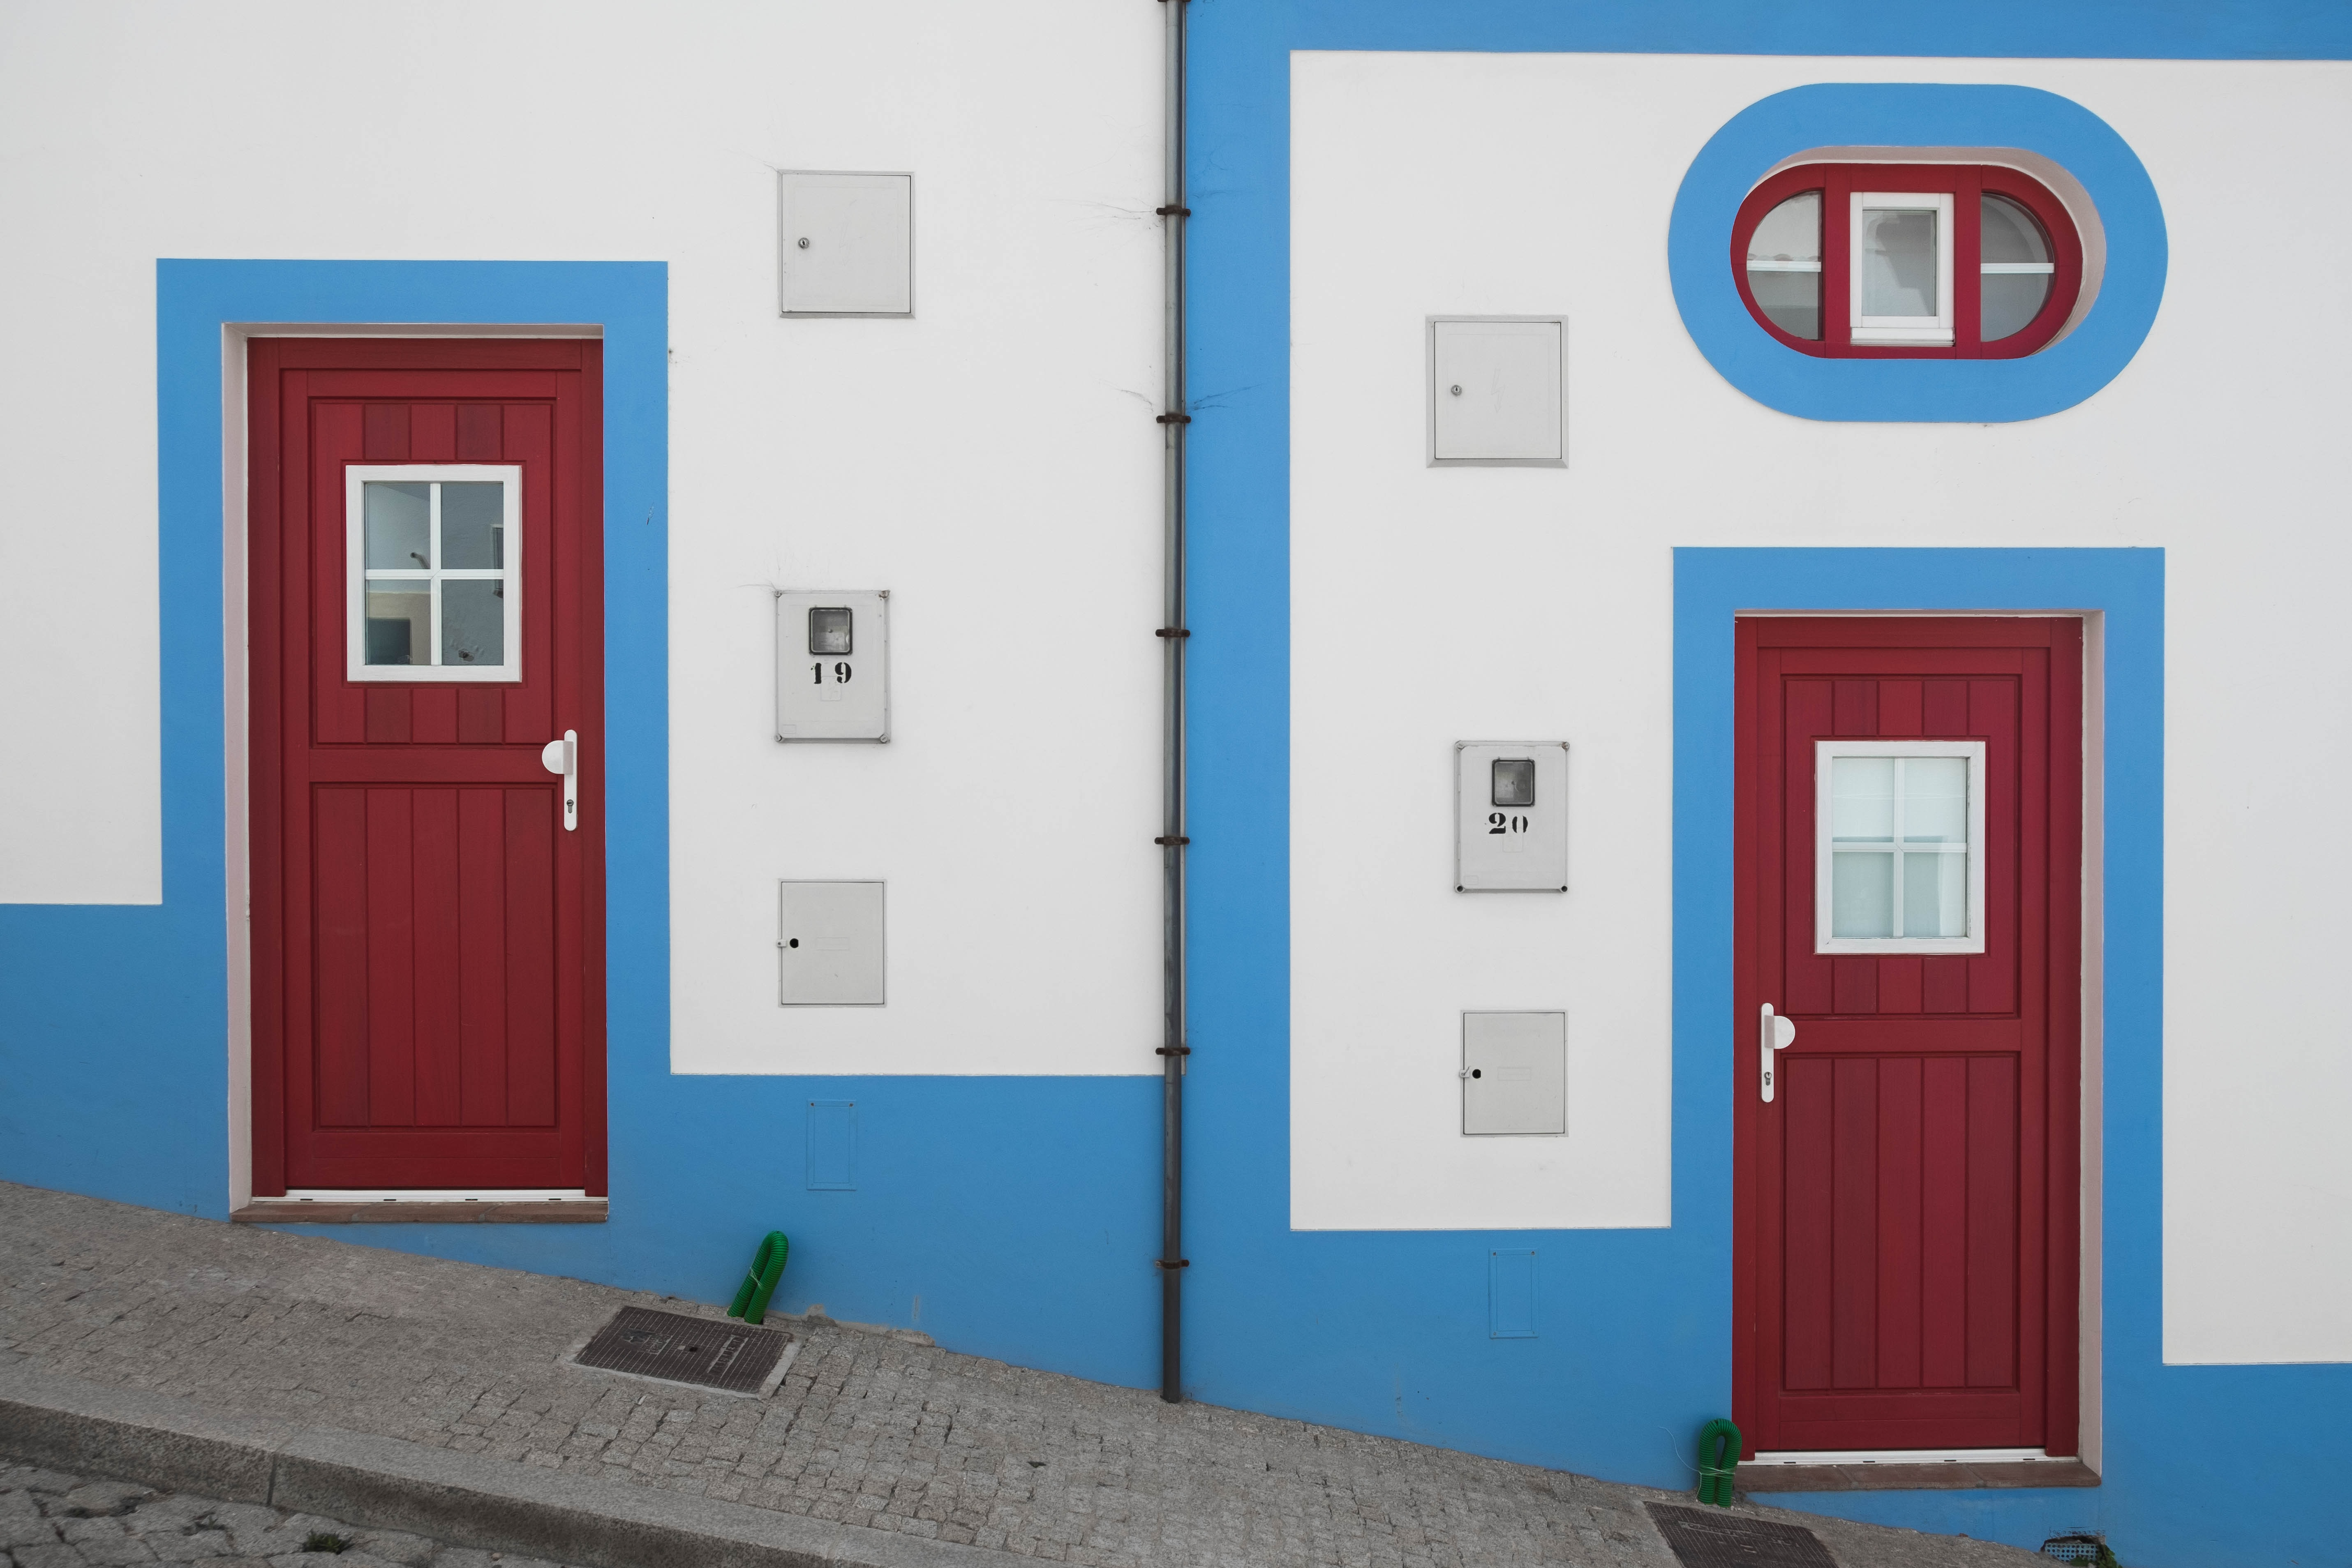 white-blue-and-red houses on inclined street at daytime